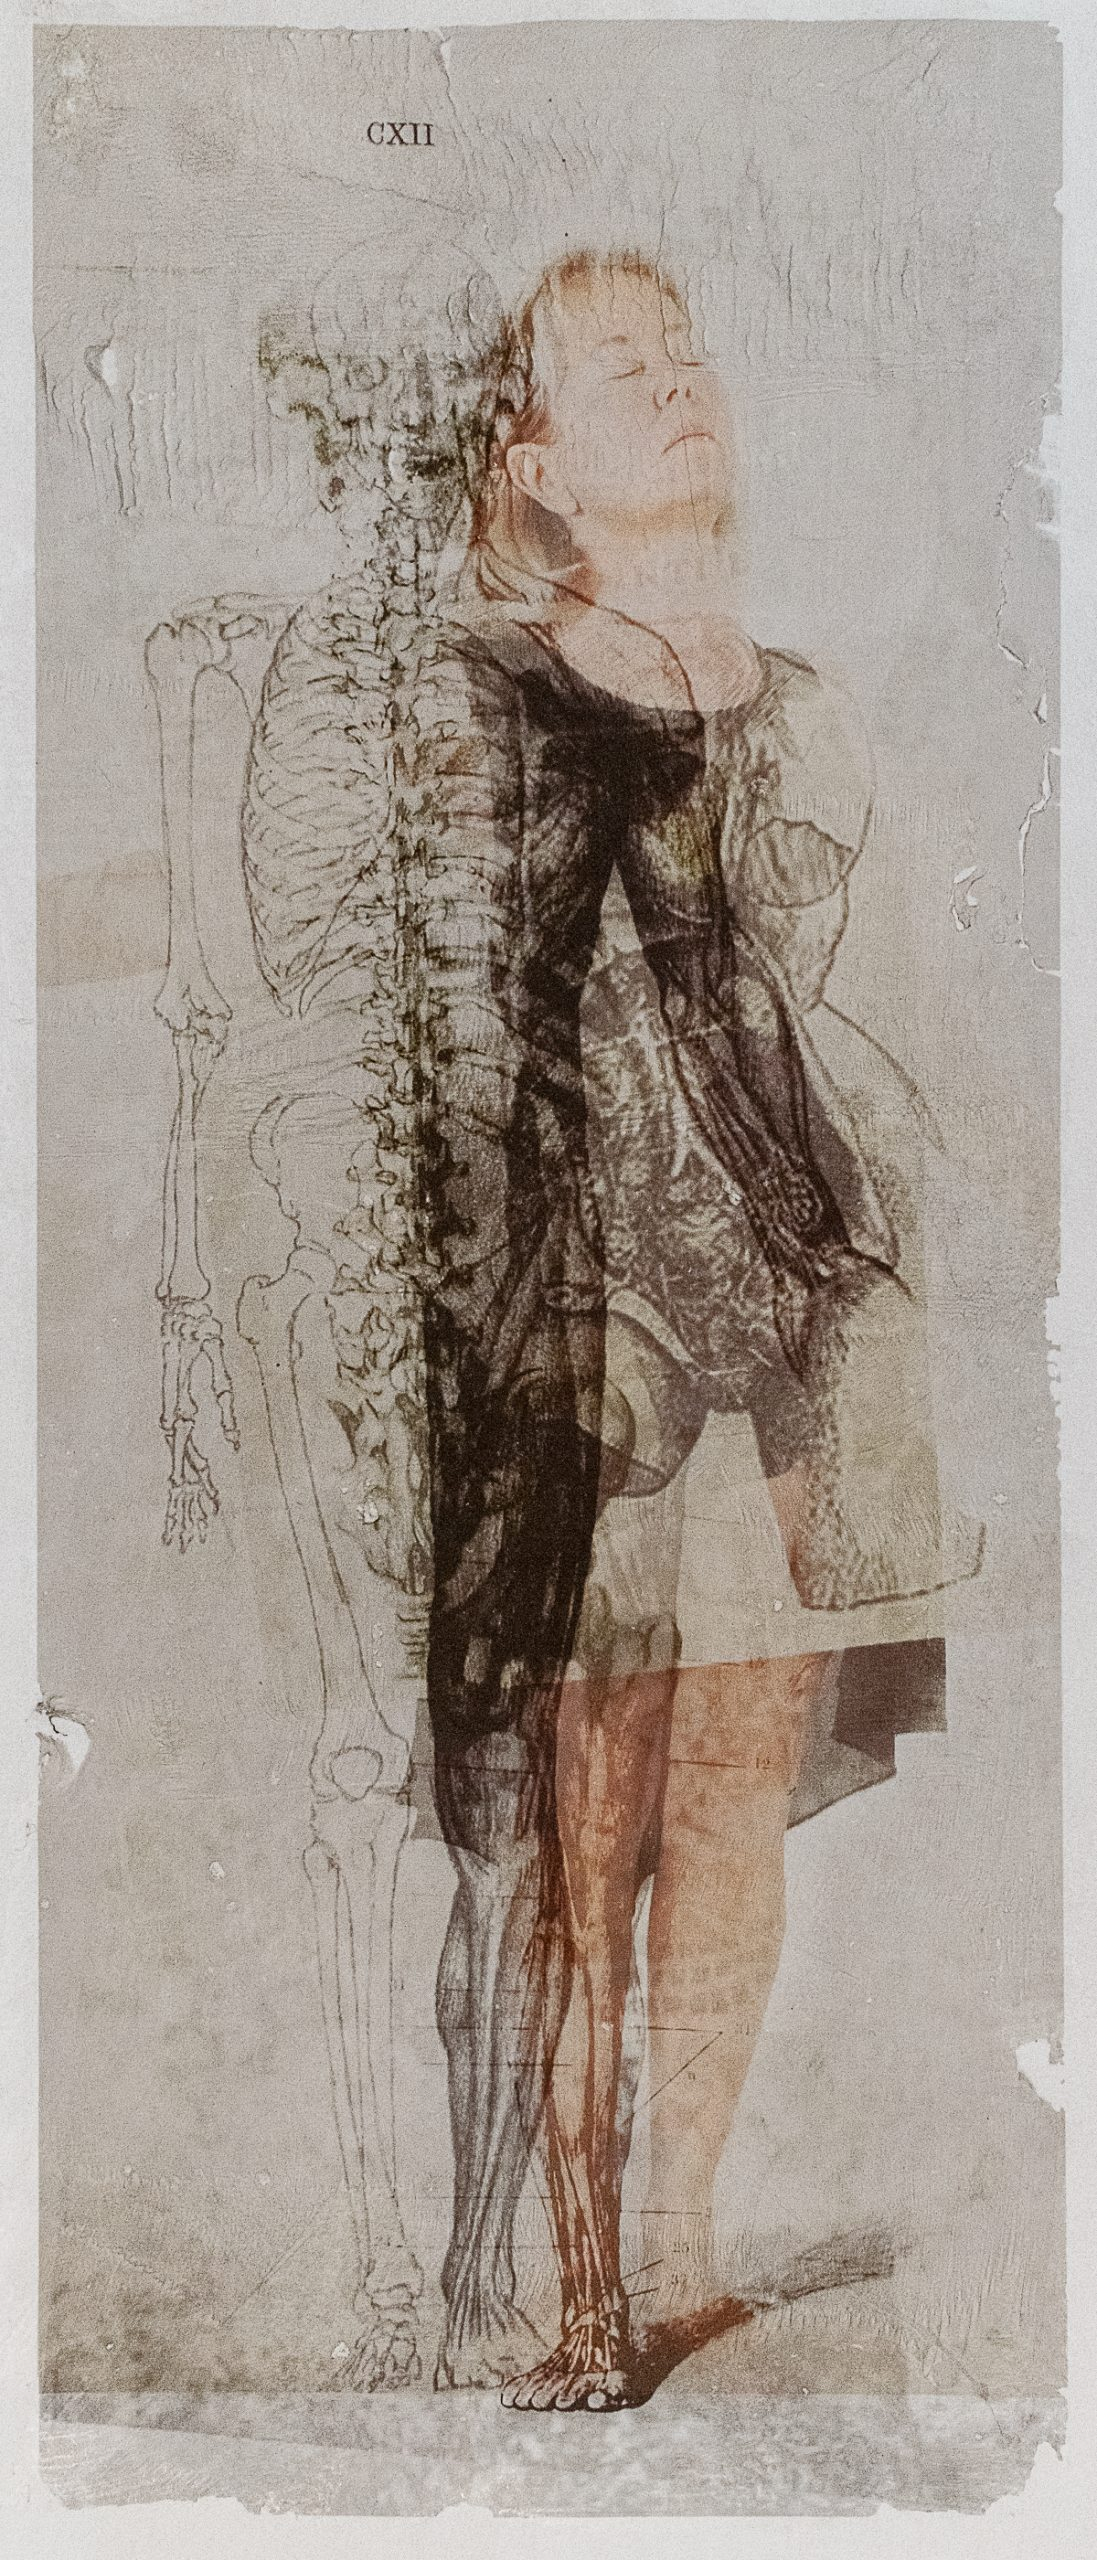 Peggy Taylor Reid, Leaning In, 2019. Image transfer on washi paper.